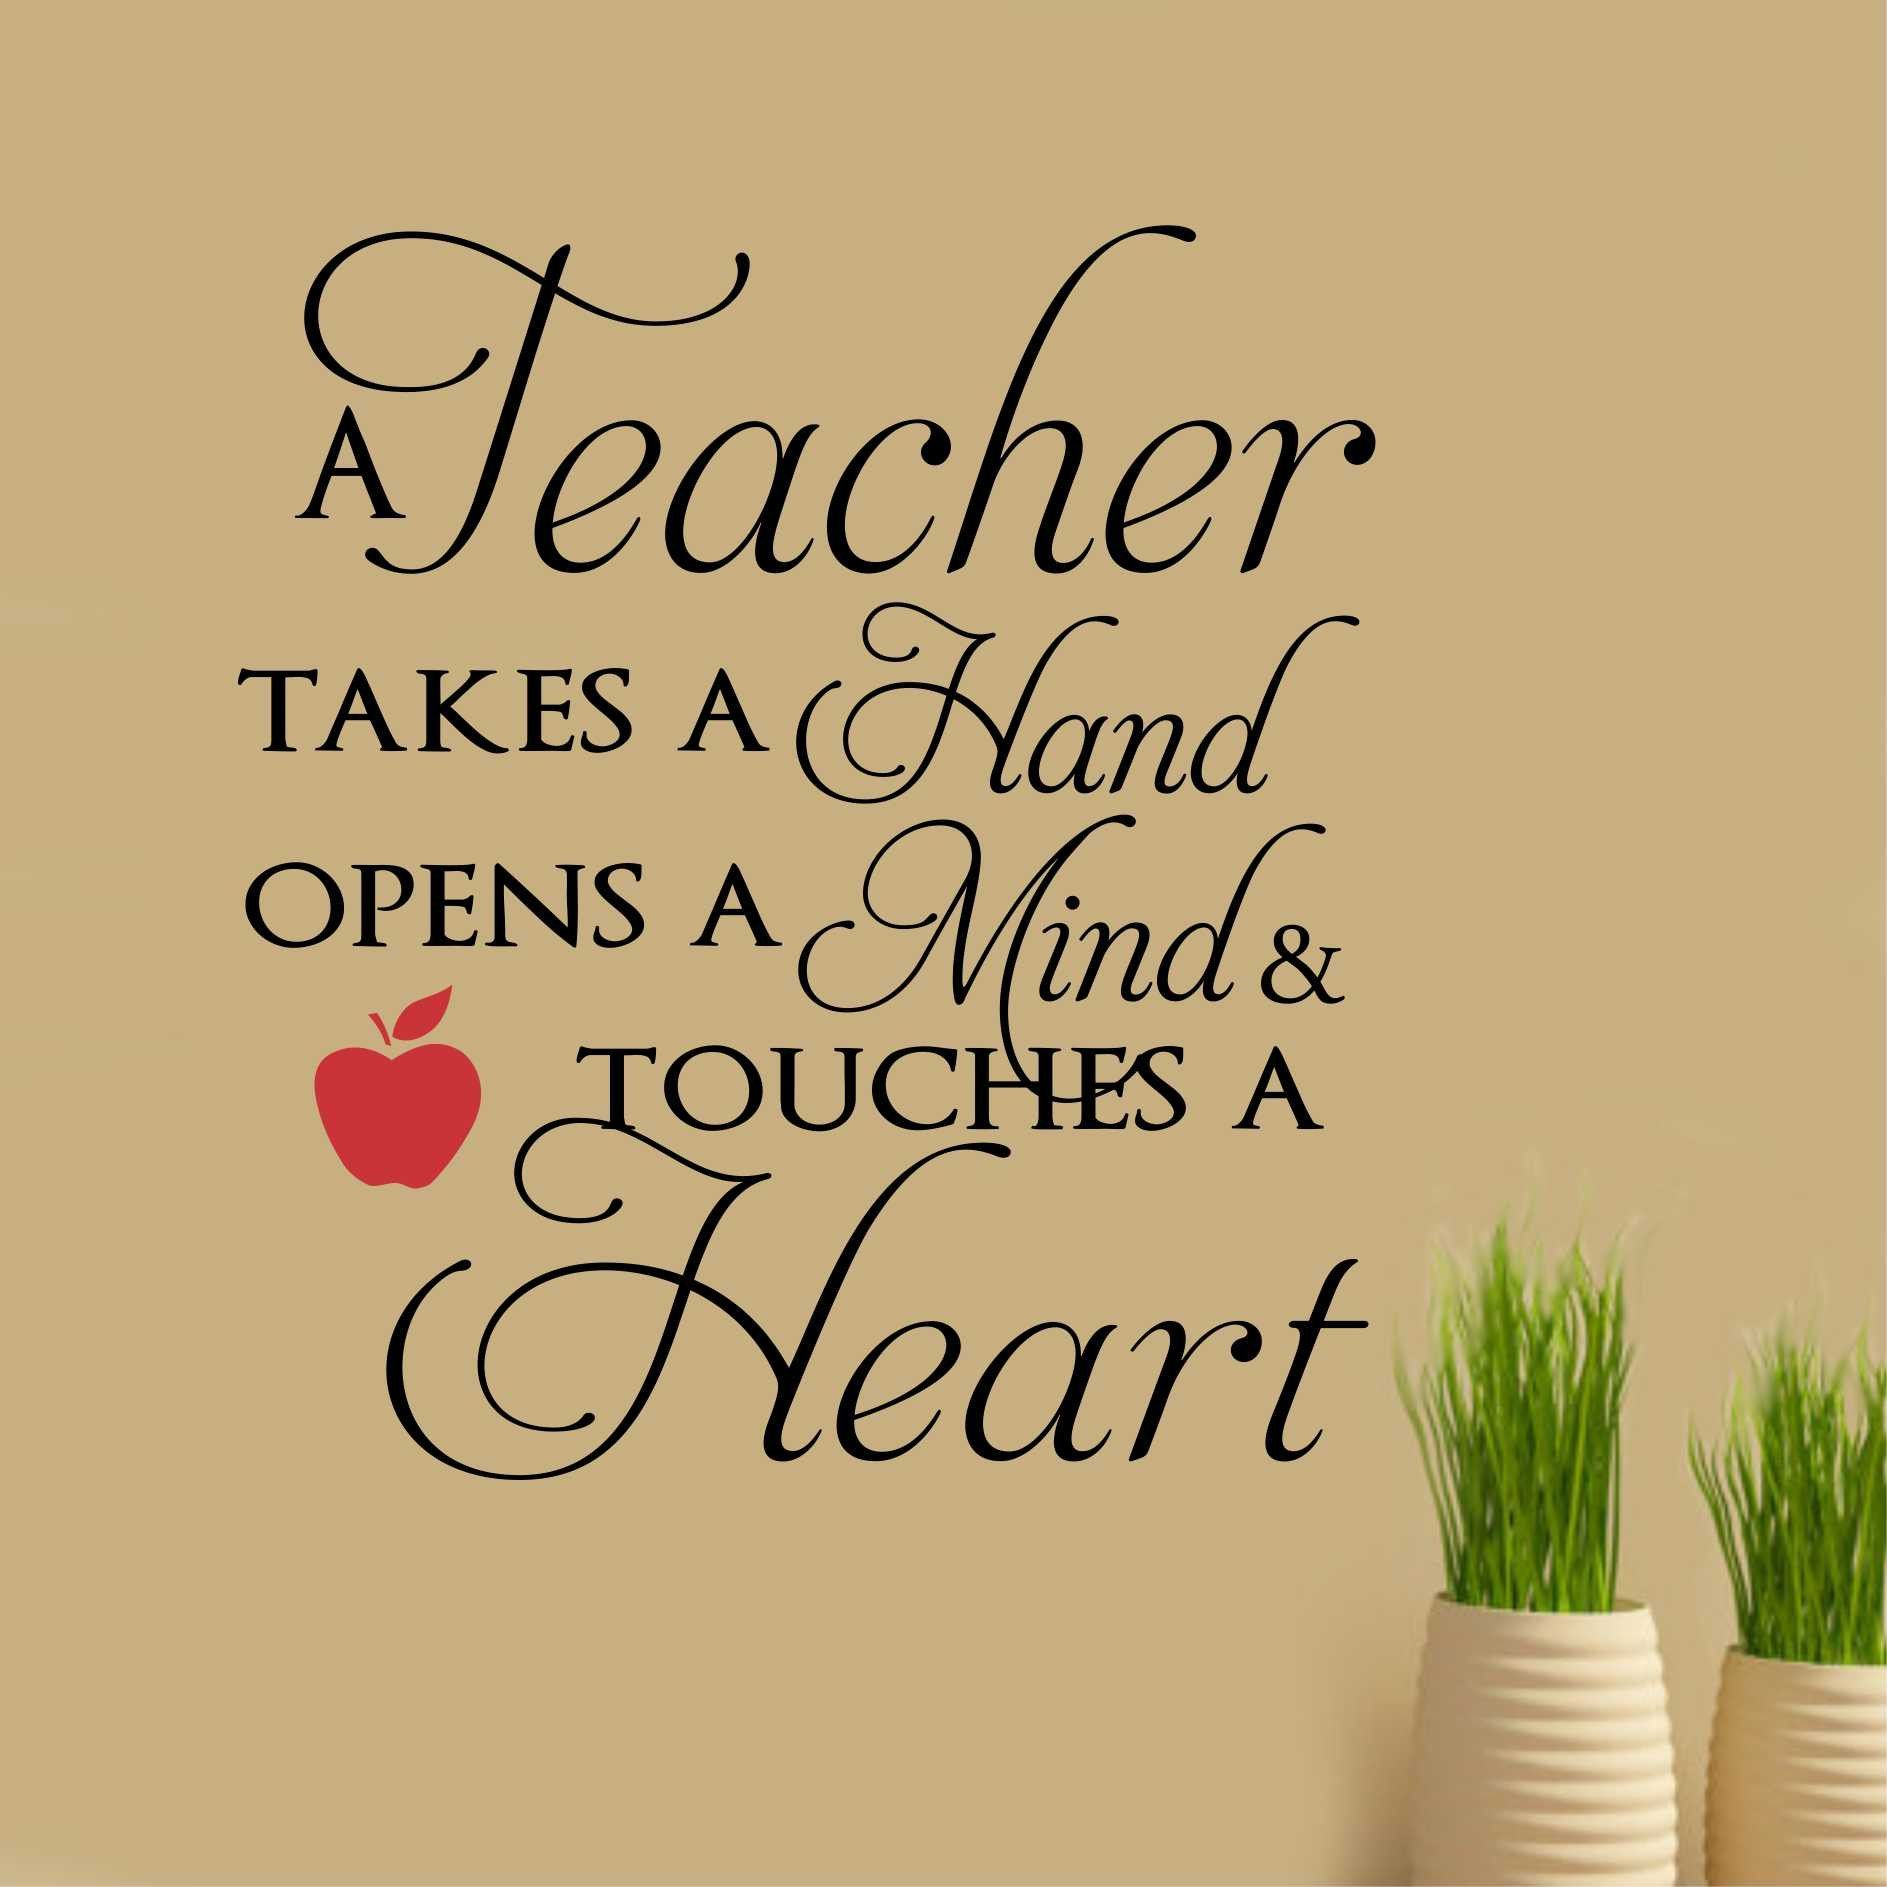 School Classroom Wall Decal A Teacher Touches A Heart